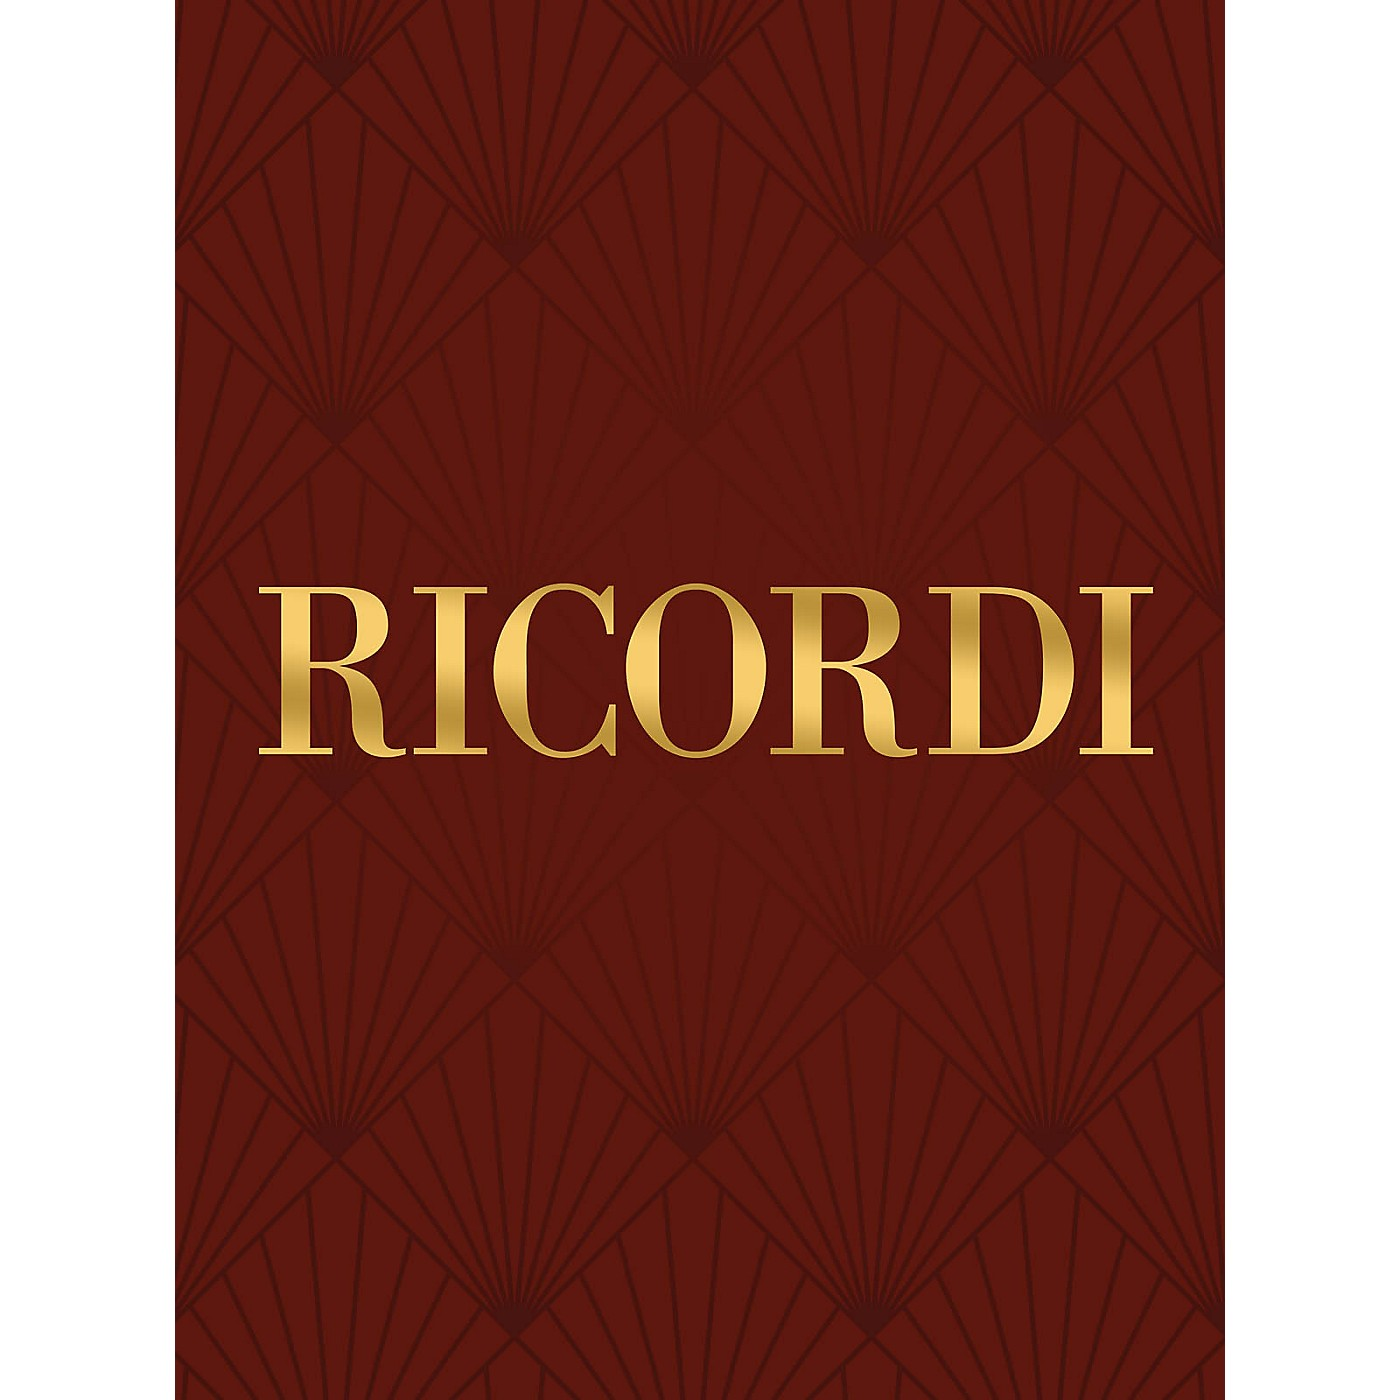 Ricordi VALZER WALTZES FOR PIANO Piano Collection Series Composed by Frederic Chopin Edited by Attilio Brugnoli thumbnail